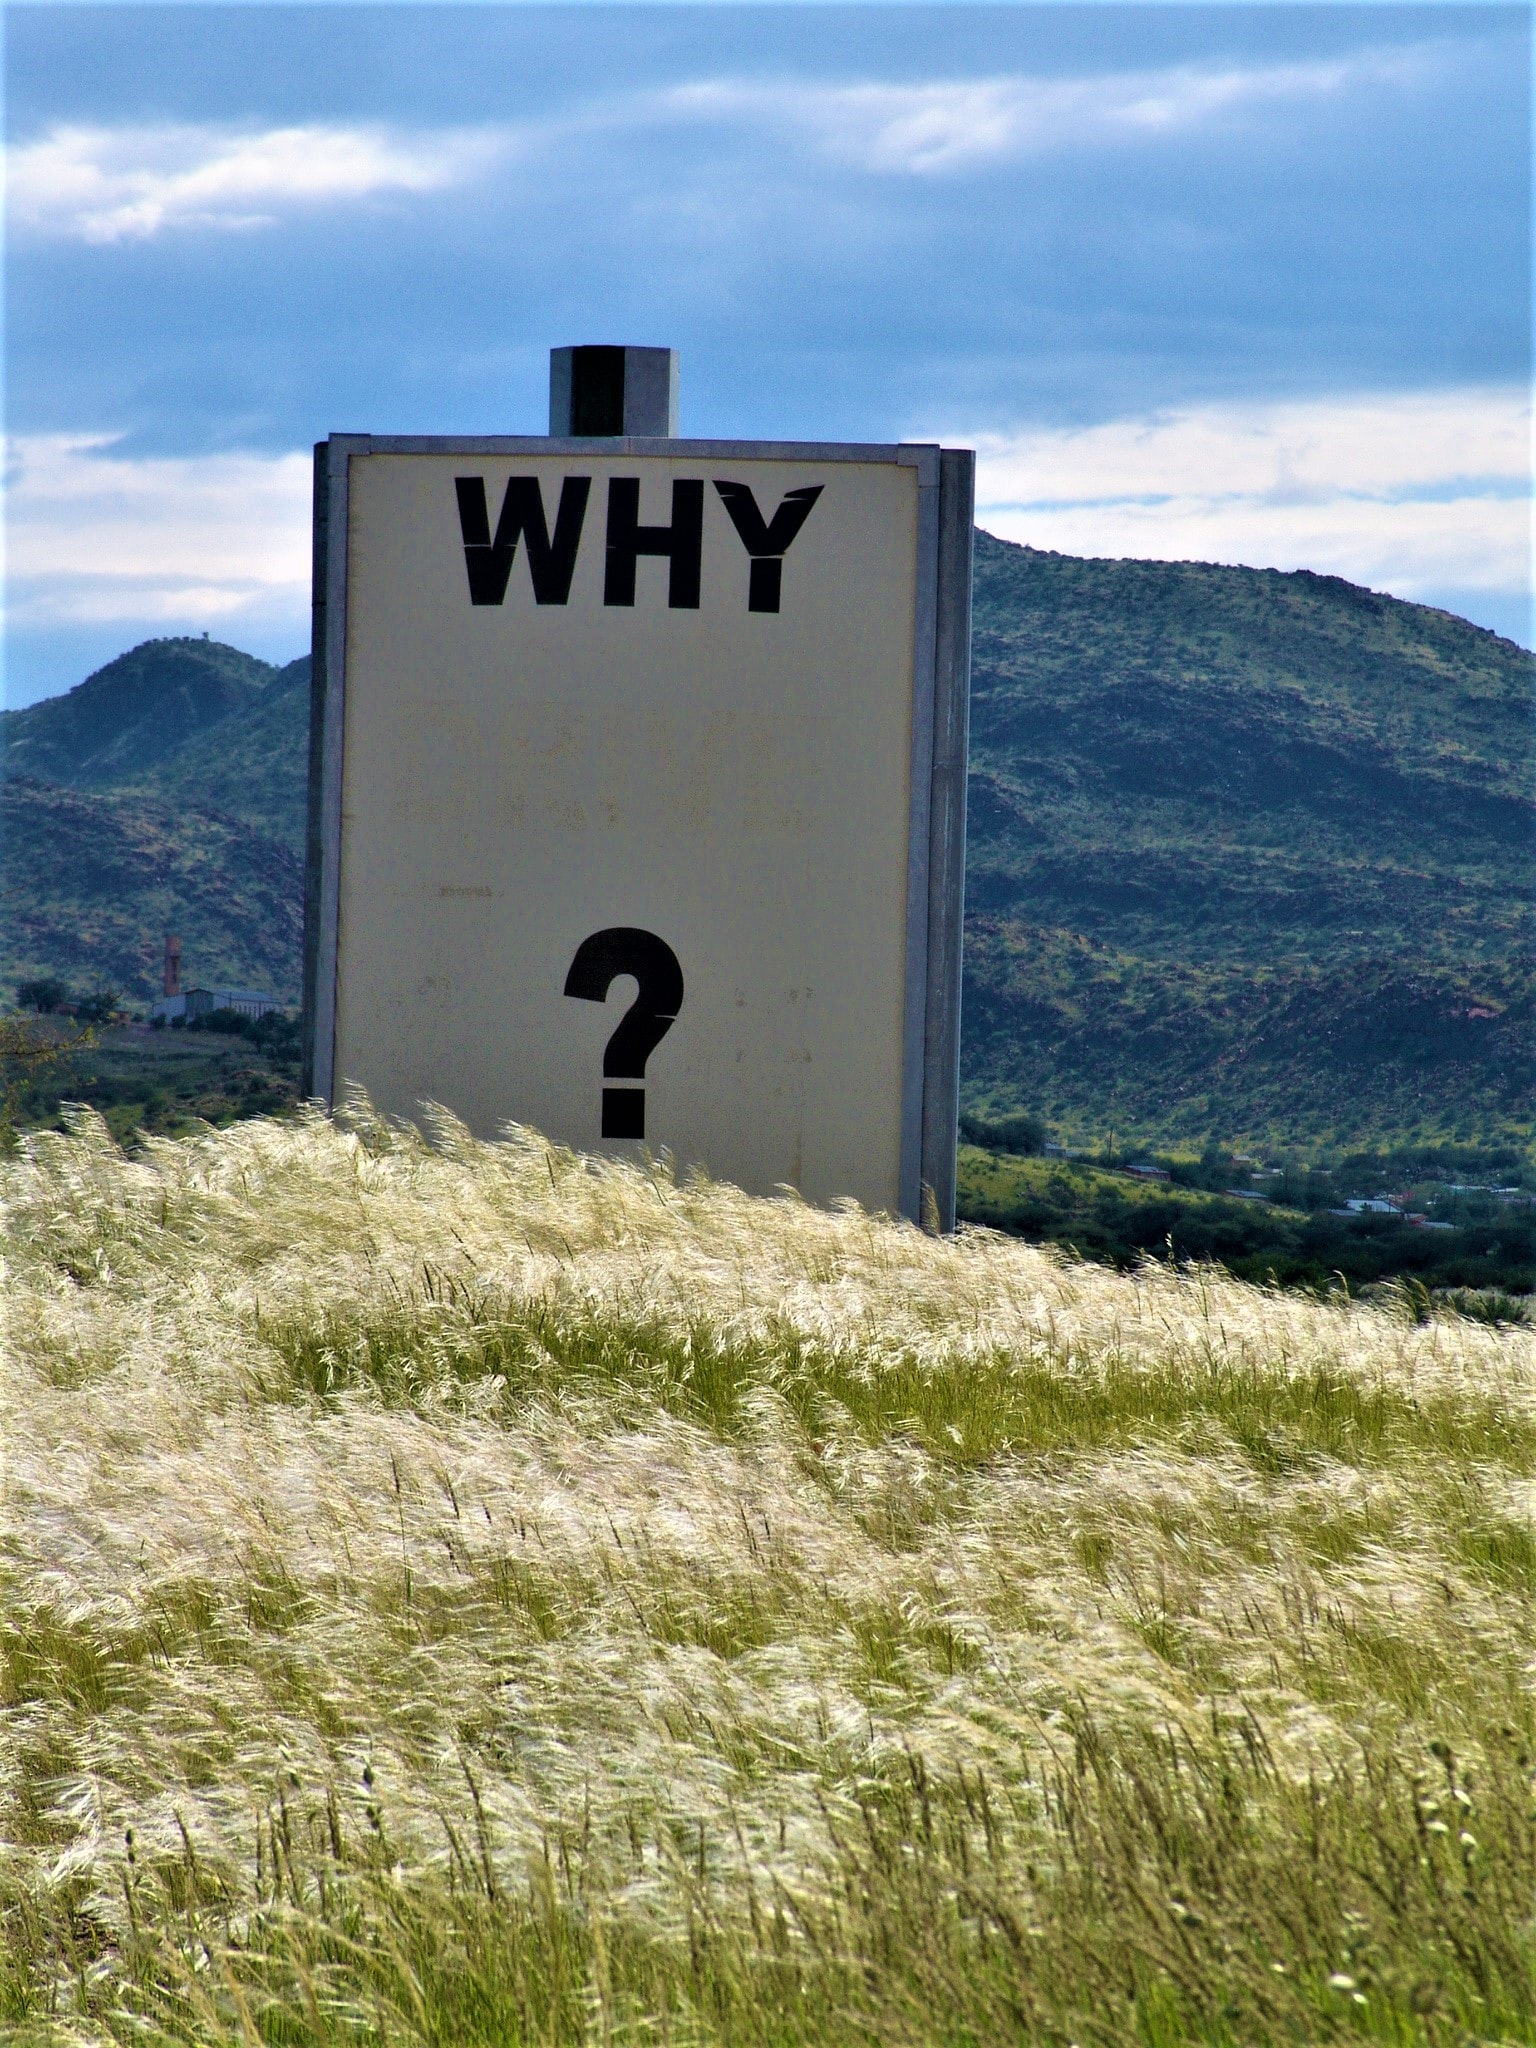 Why? questions stories